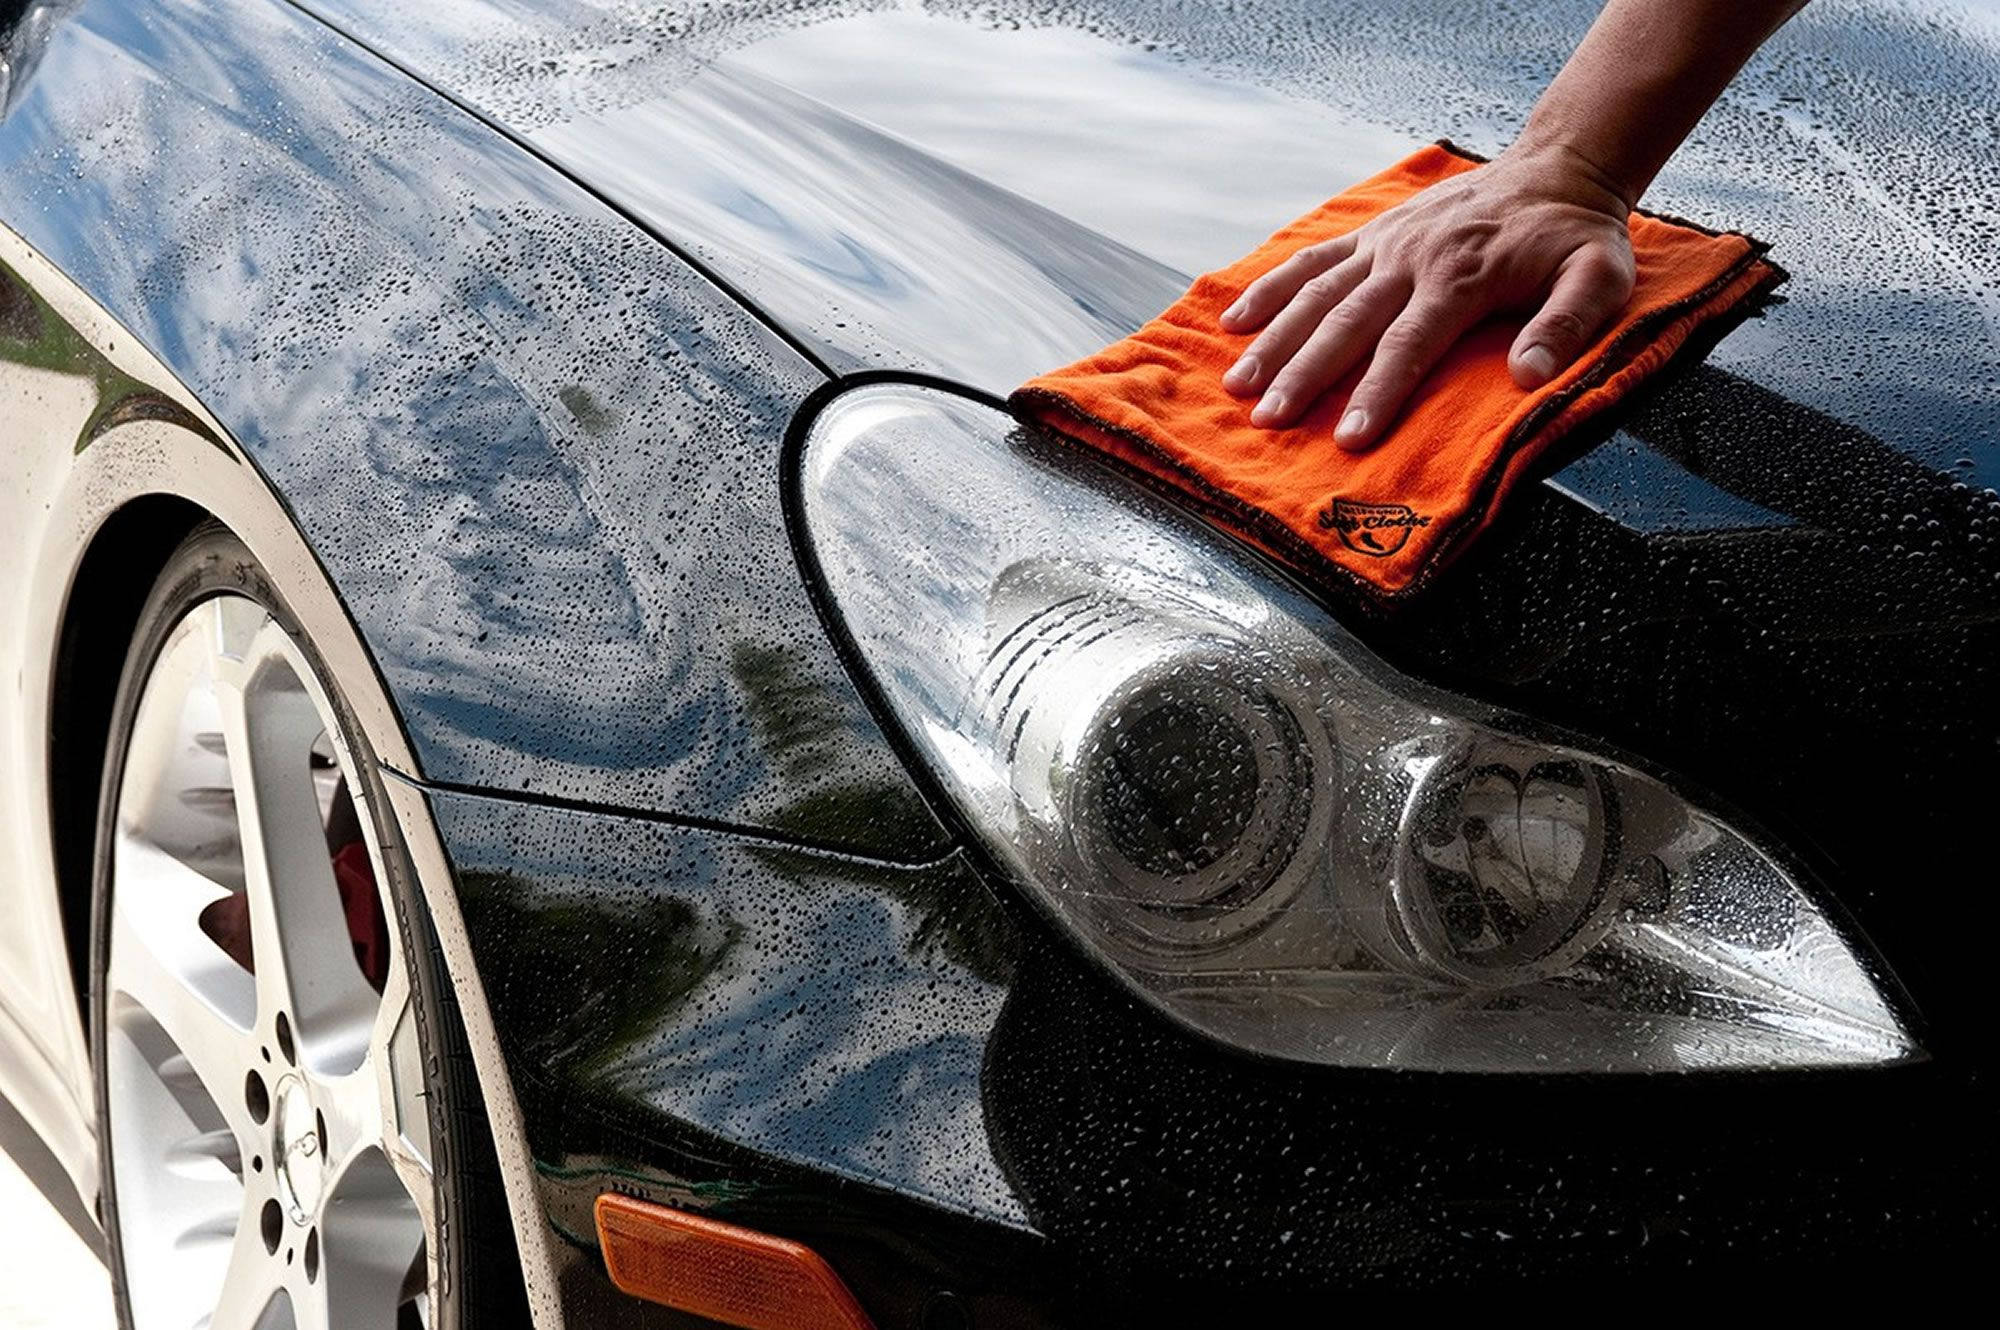 Car cleaning